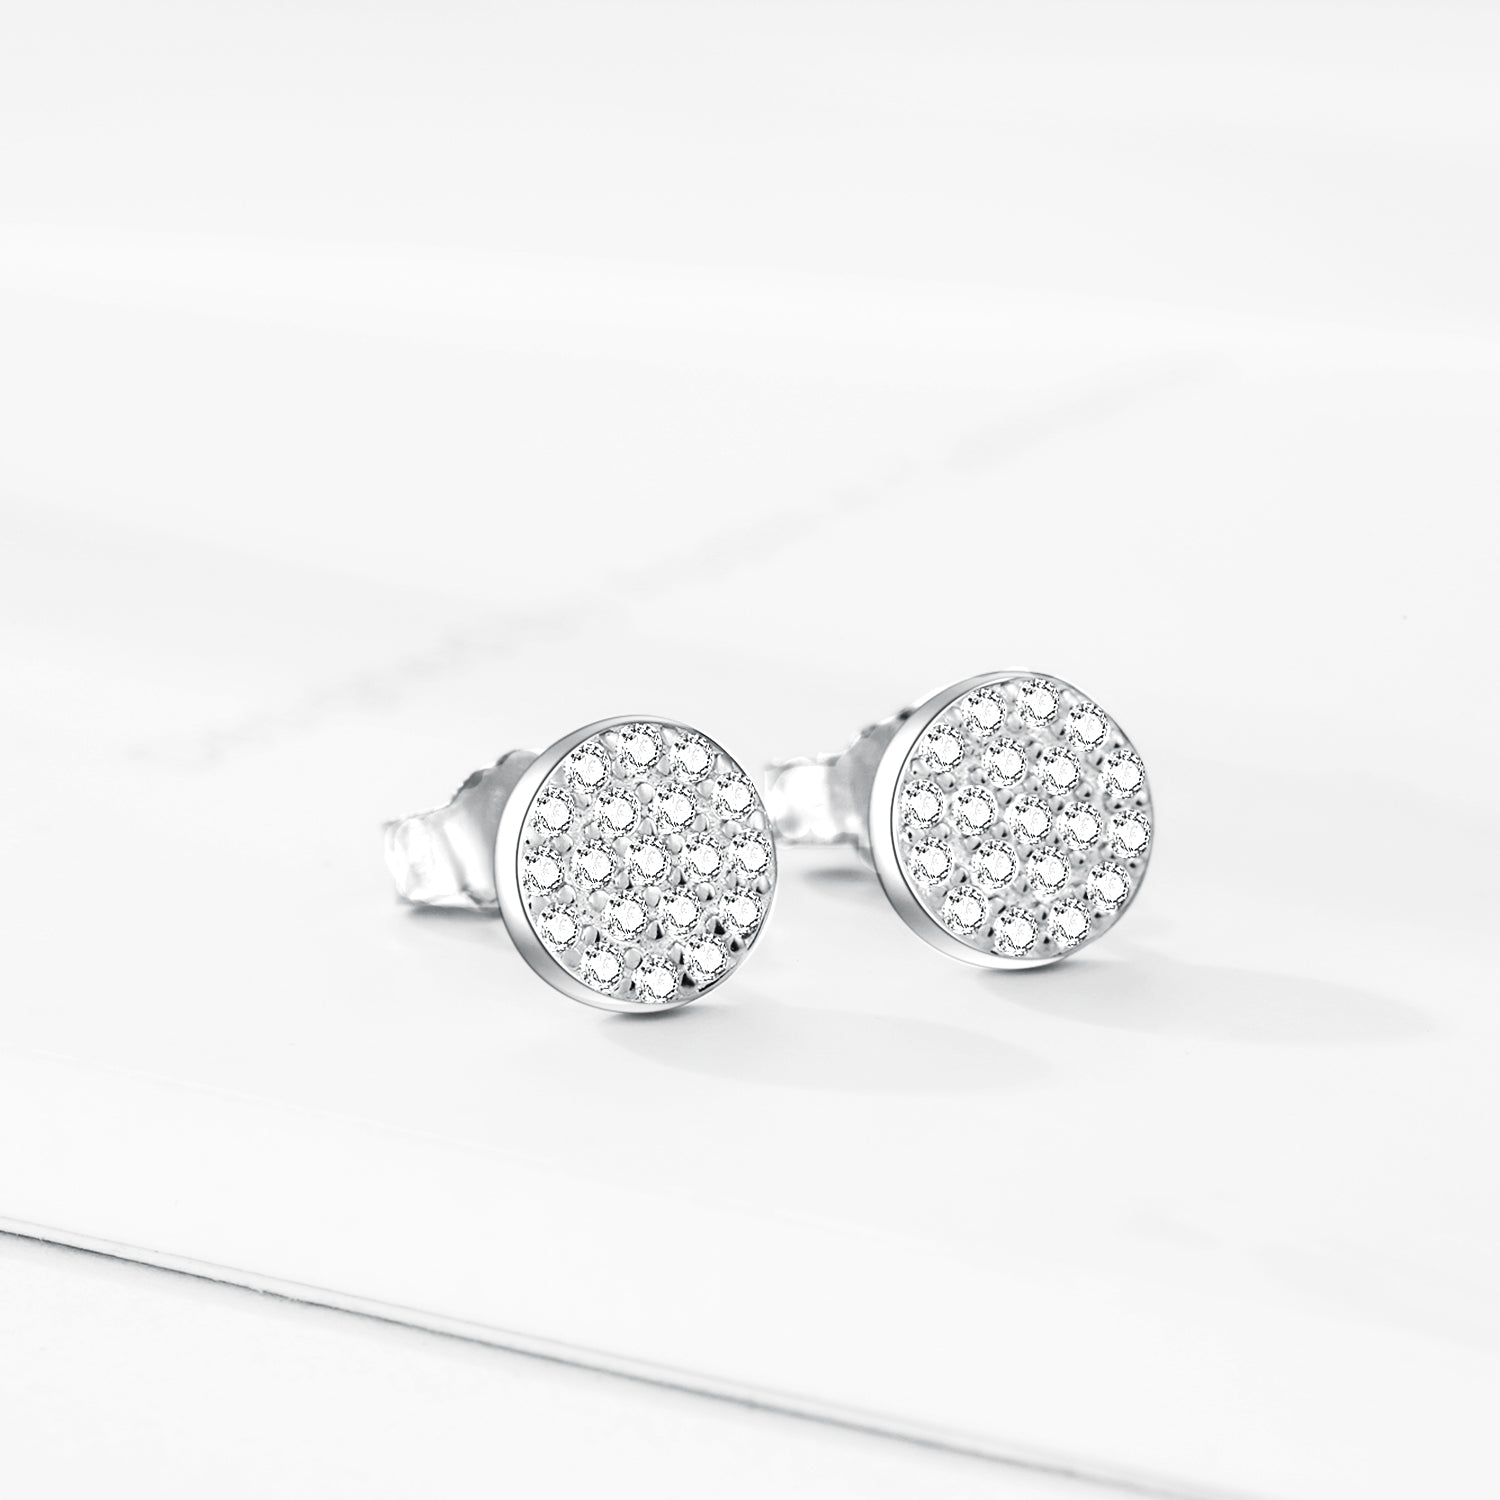 Wholesale Custom Small Moq Light Weight Round Zirconia Earrings For Women